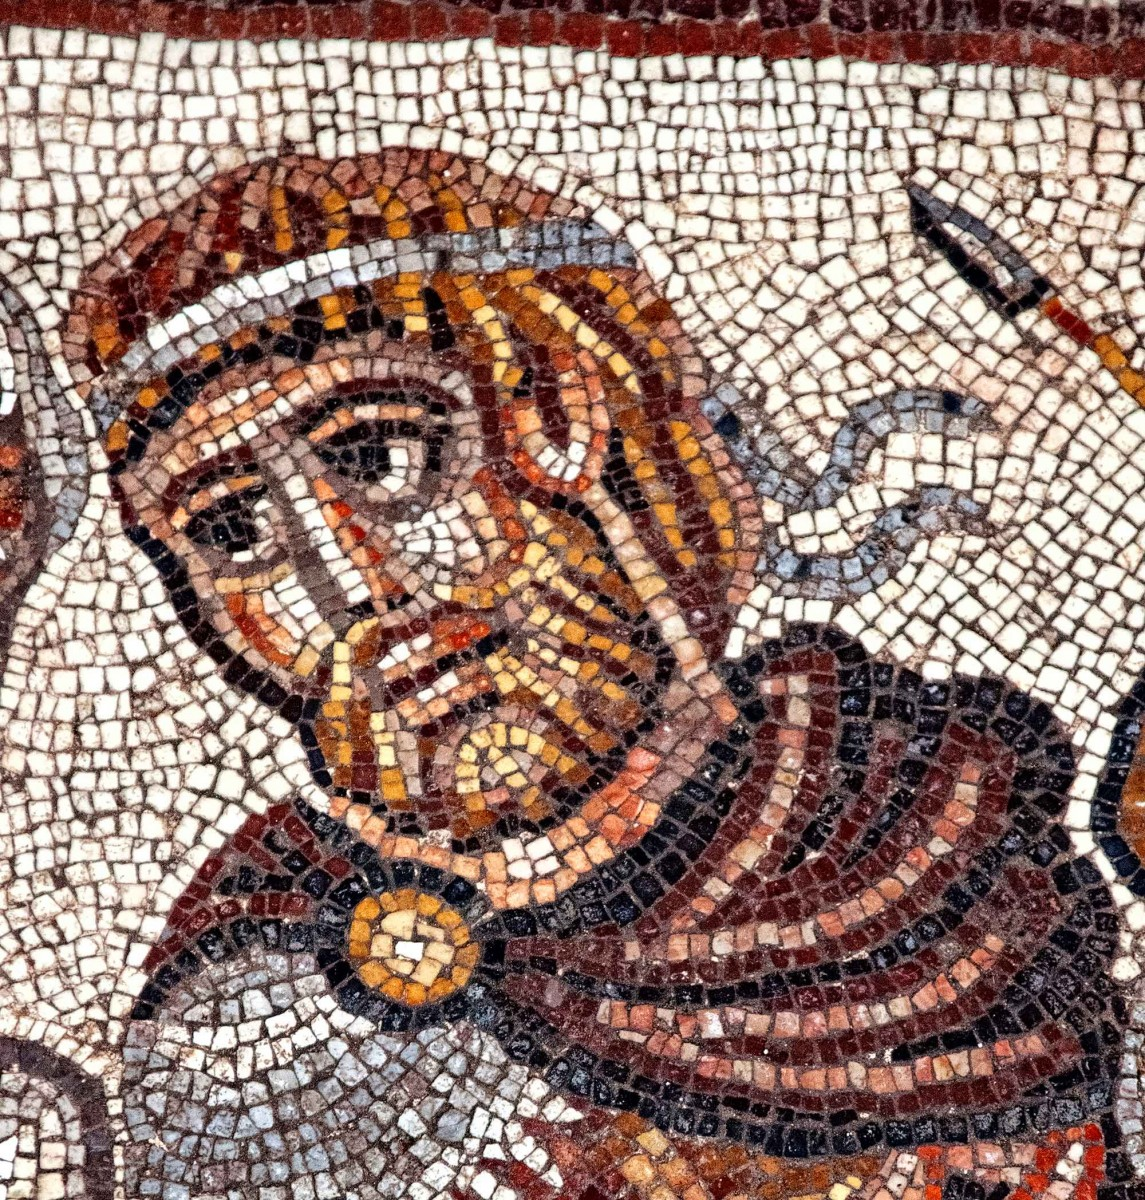 Detail of mosaic at Huqoq, Israel: The head of the possible Alexander figure in the mosaic. (photo by Jim Haberman)